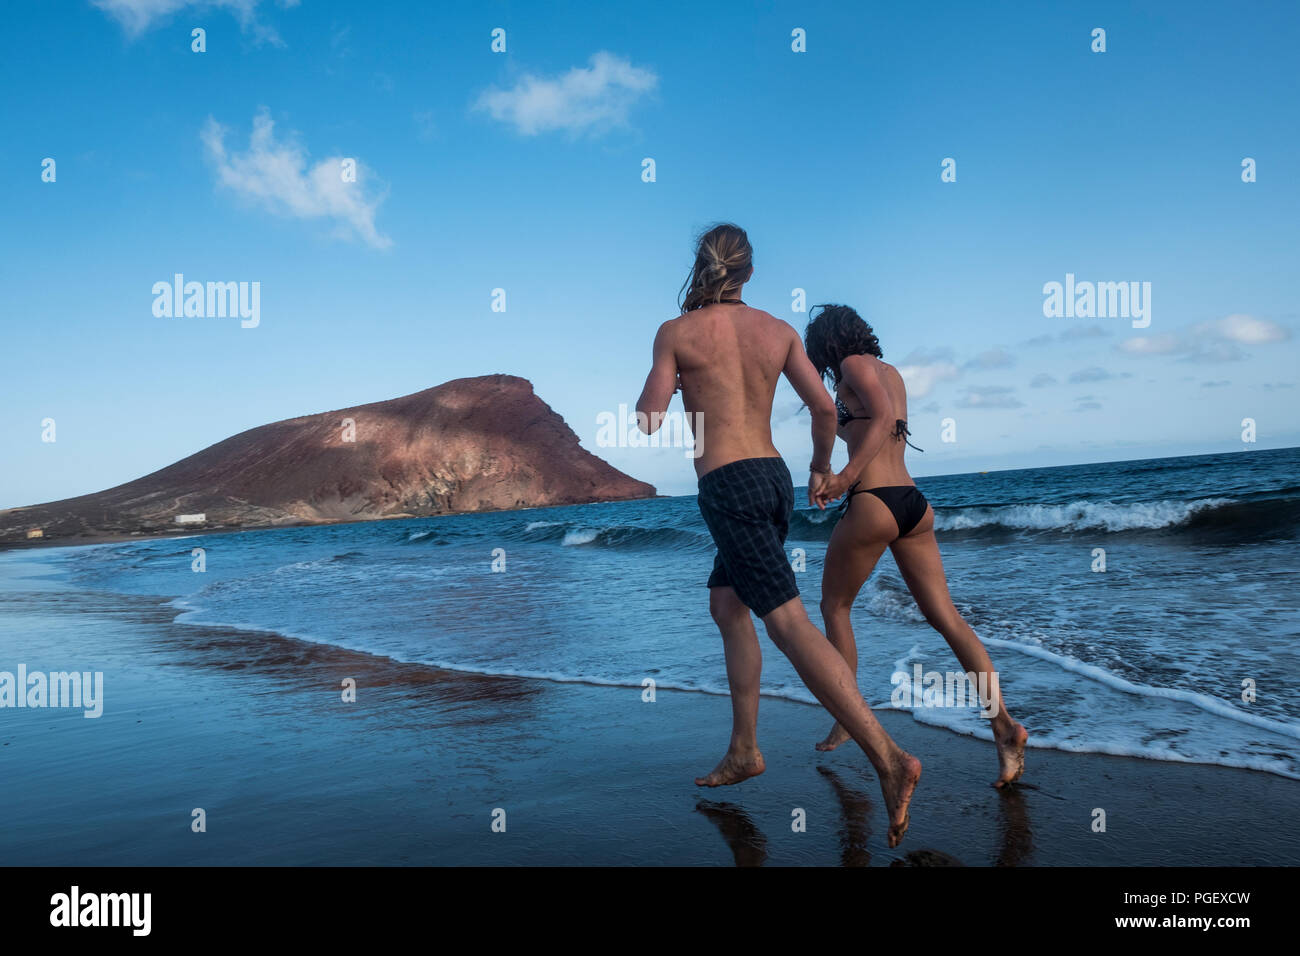 couple of young man and woman running on the beach near thw ocean. outdoor leisure activity for happy couple of traveler during summer holiday. beauti - Stock Image